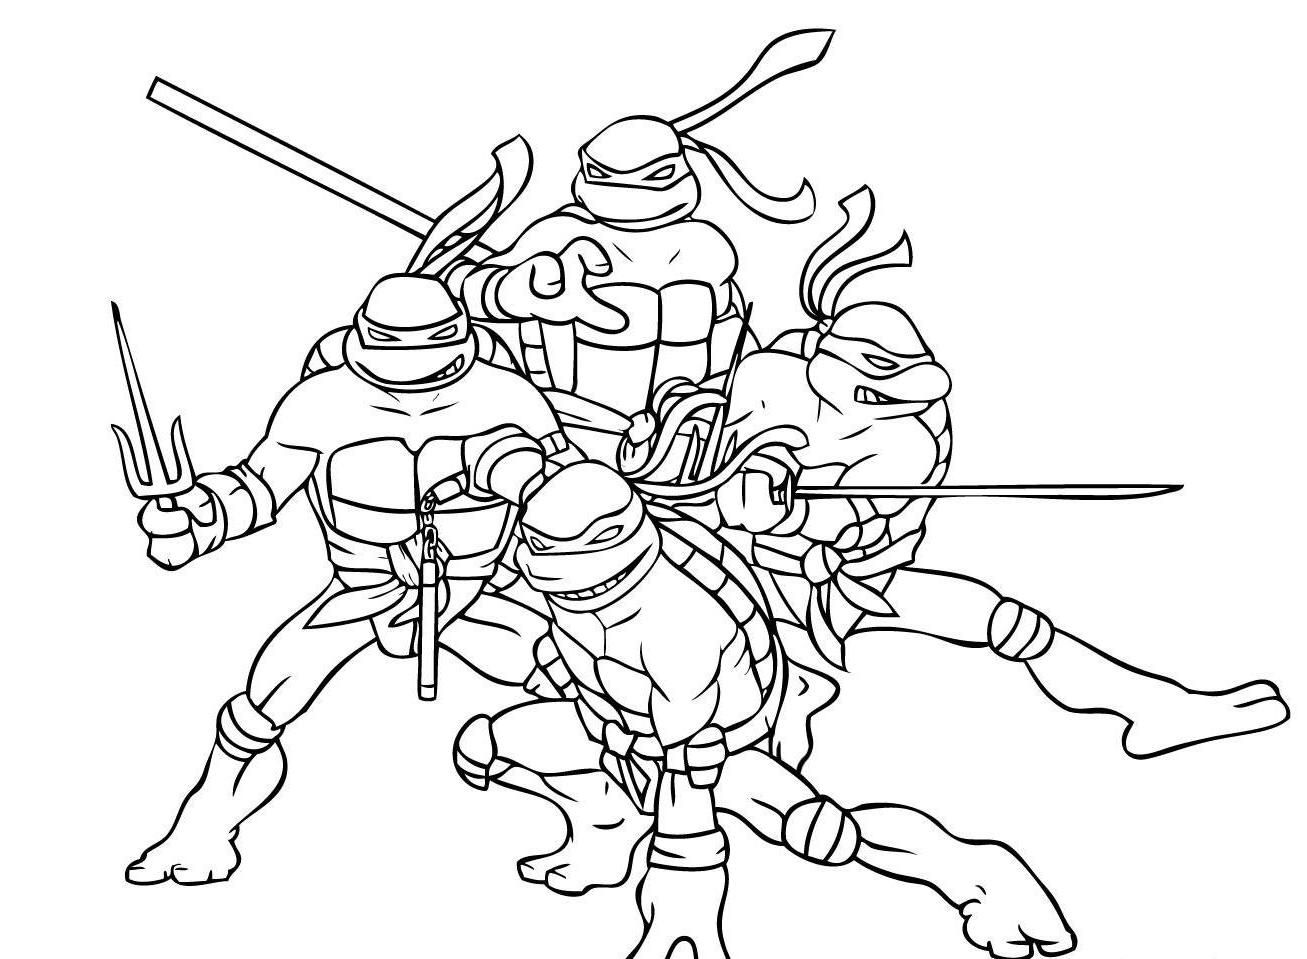 The Ninja Turtles Coloring Pages | Kids | Pinterest